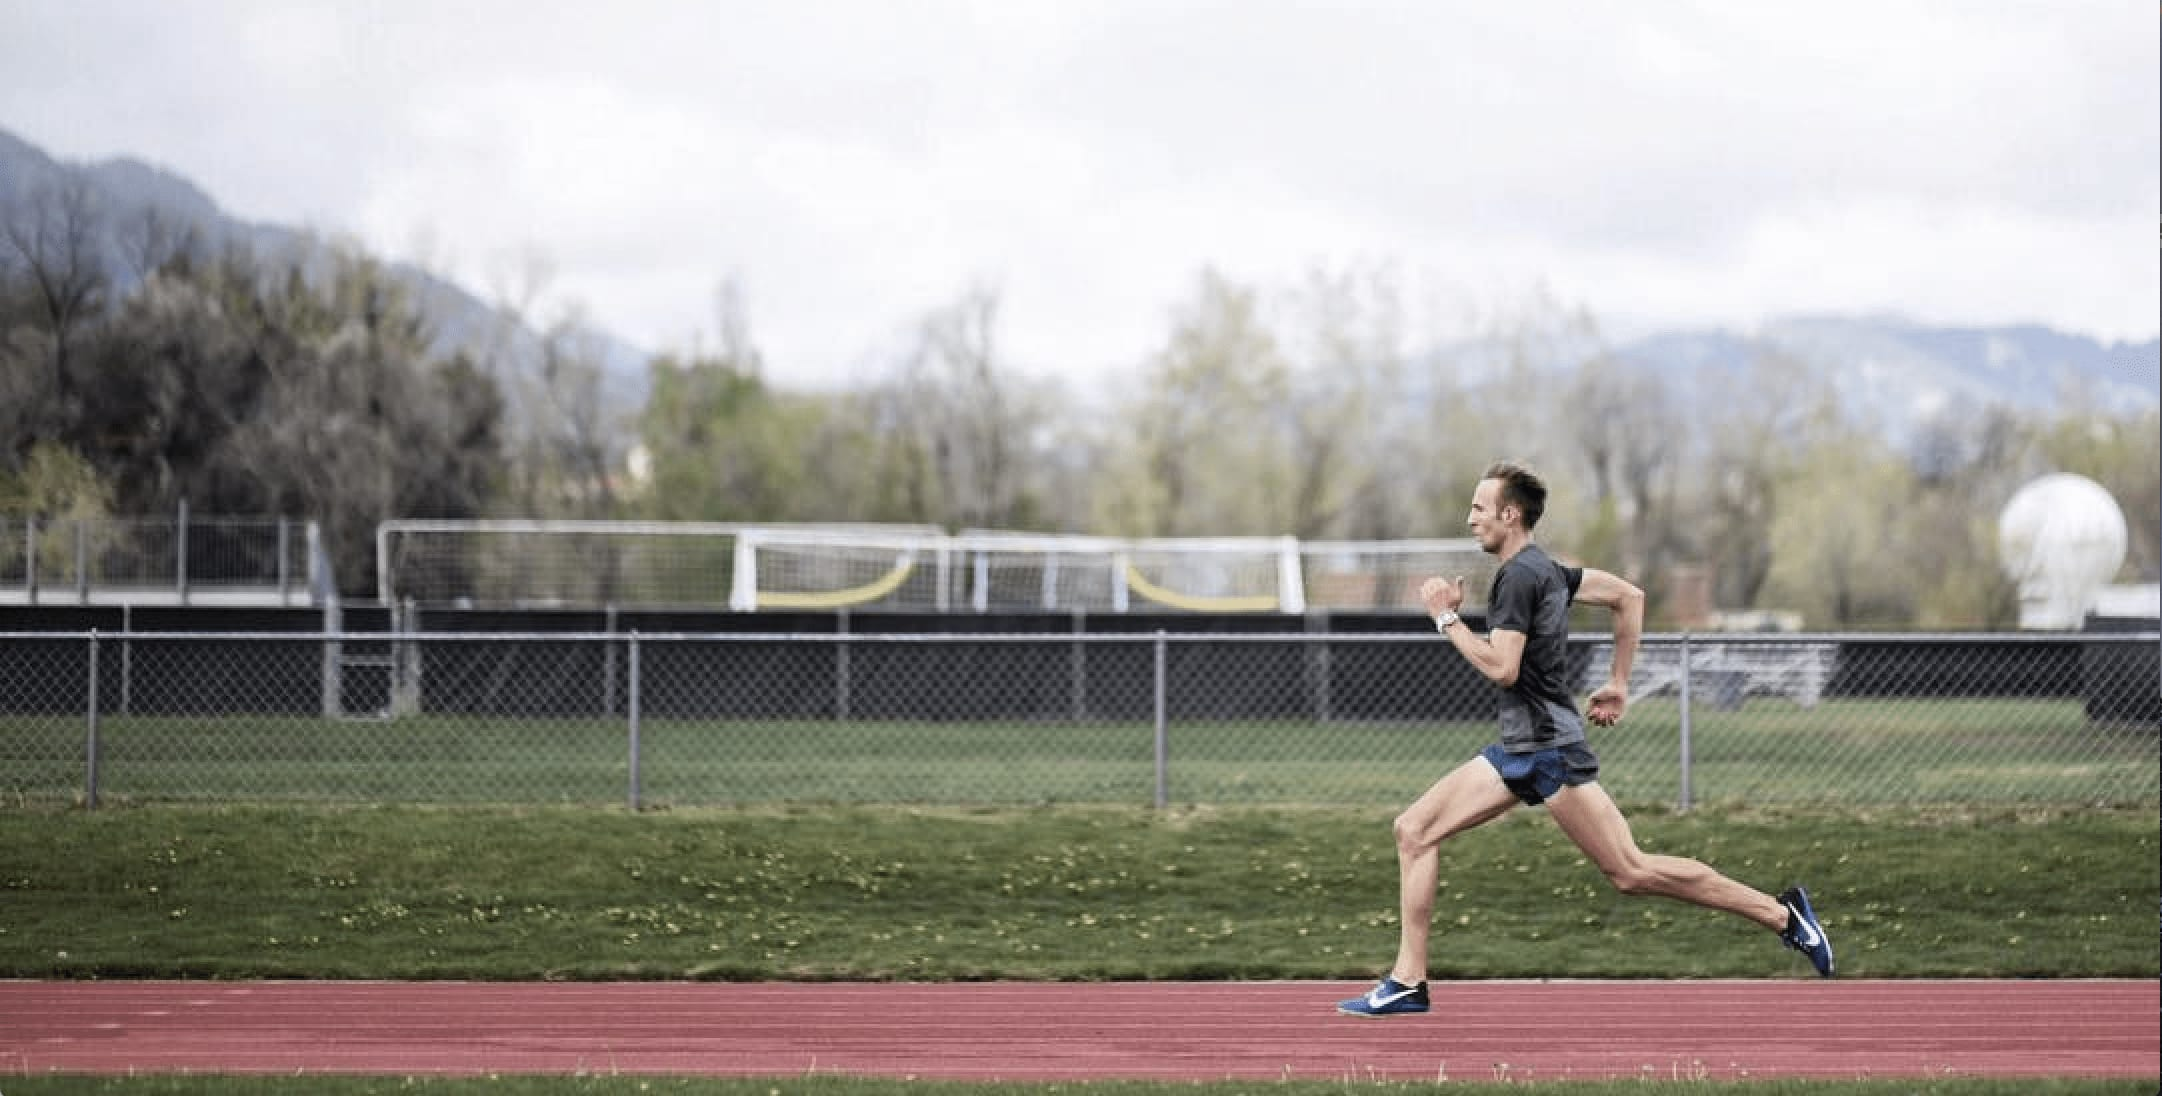 Meet Riley Masters  Professional Runner & Director of Development at The Feed